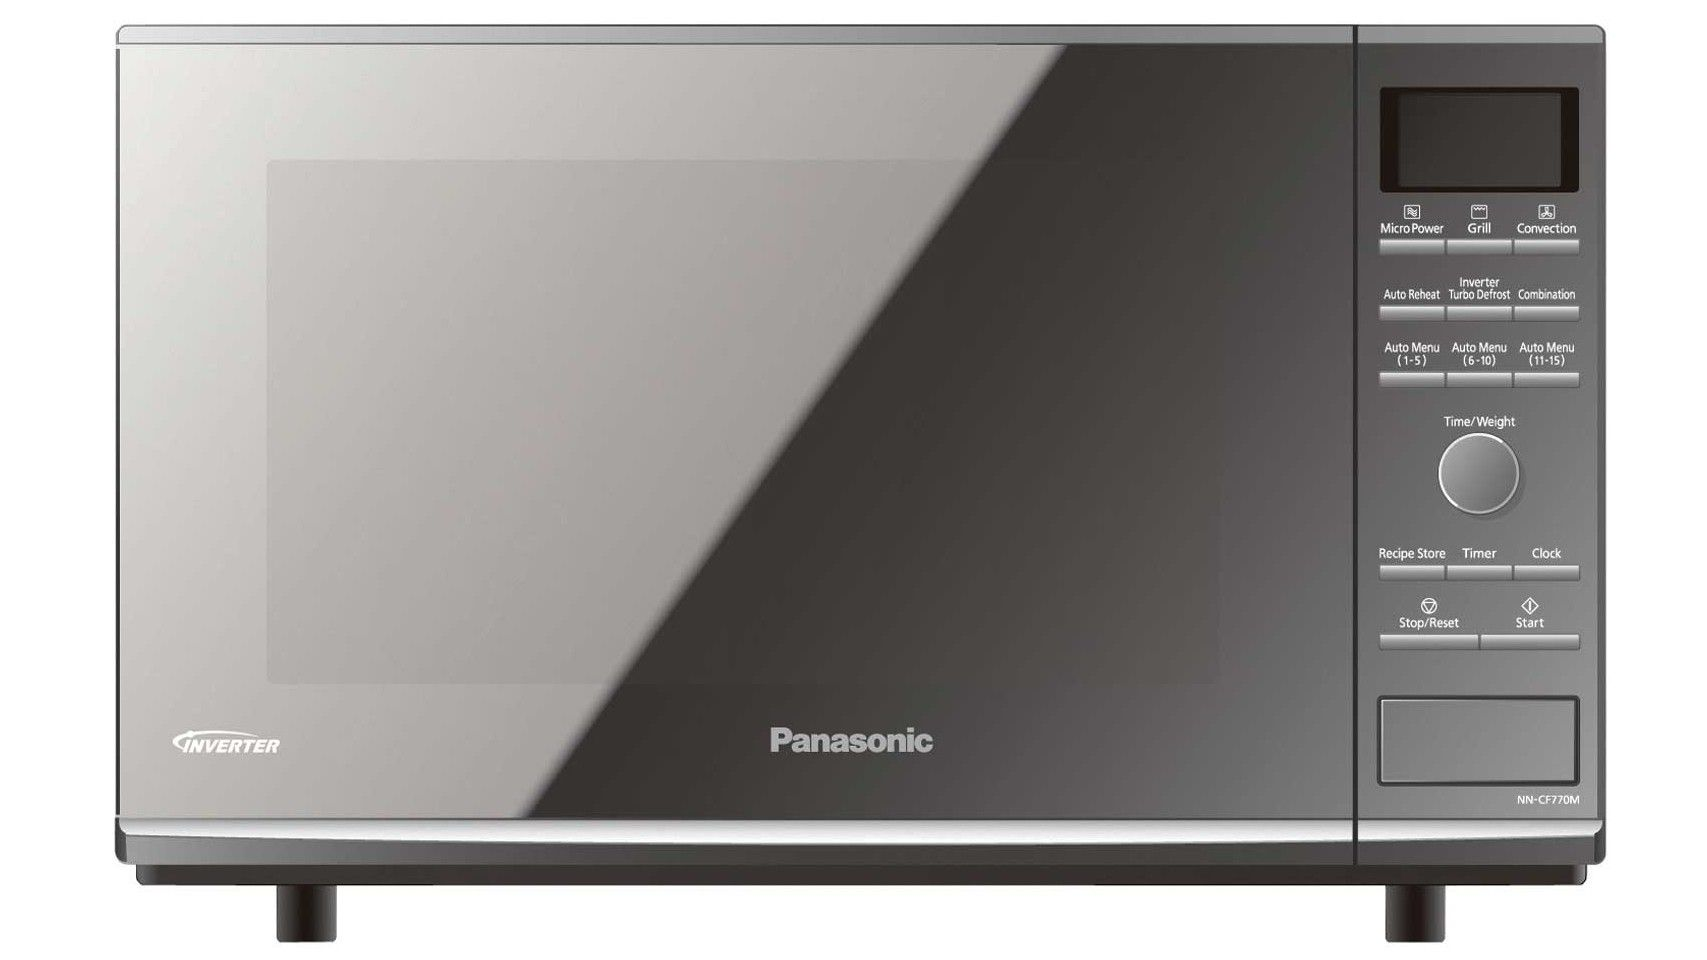 Panasonic 27l Convection Flatbed Microwave Oven